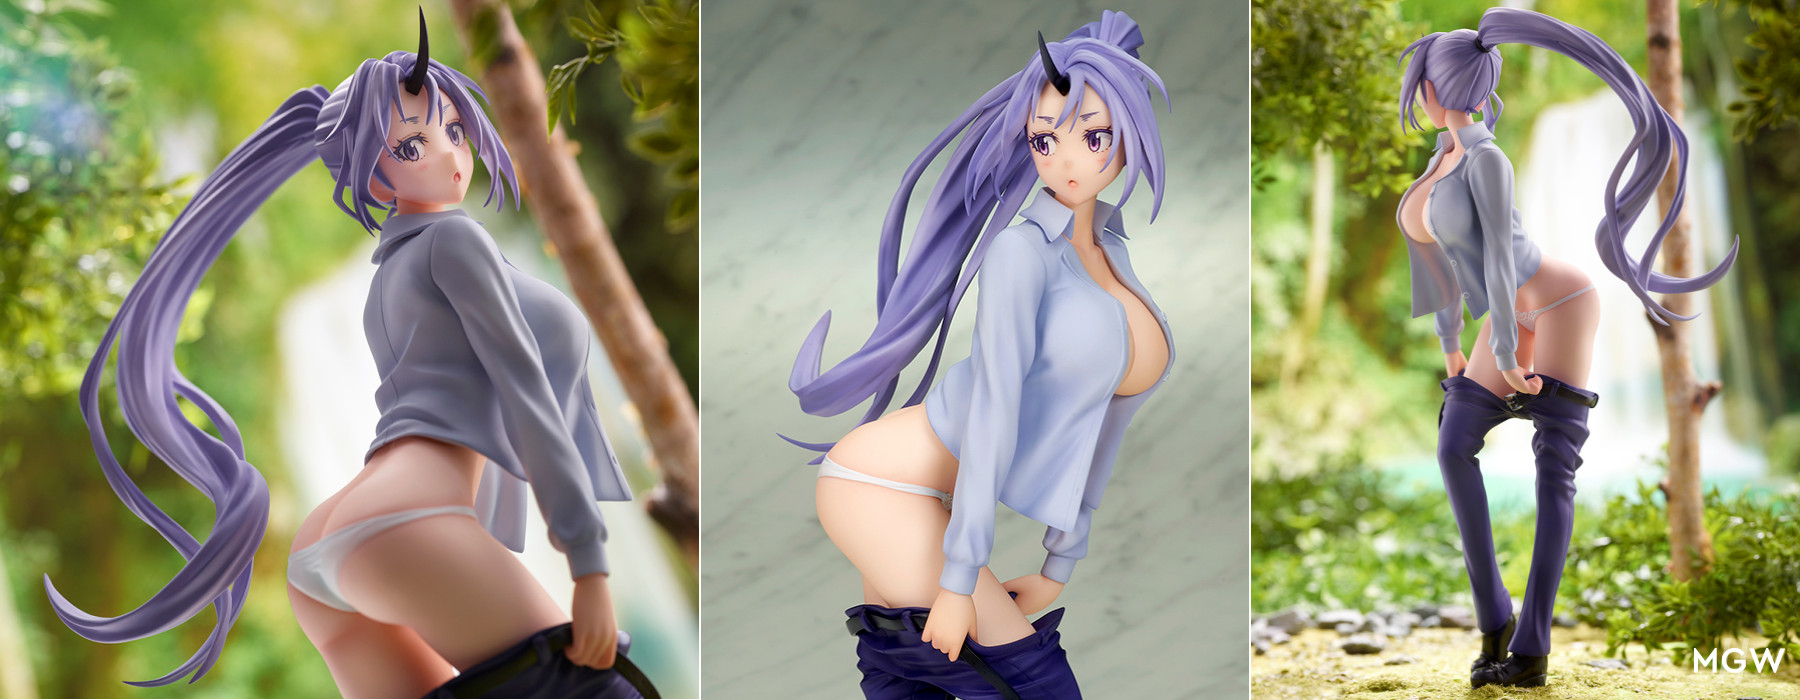 Shion Okigae Mode by quesQ from That Time I Got Reincarnated as a Slime MyGrailWatch Anime Figure Guide